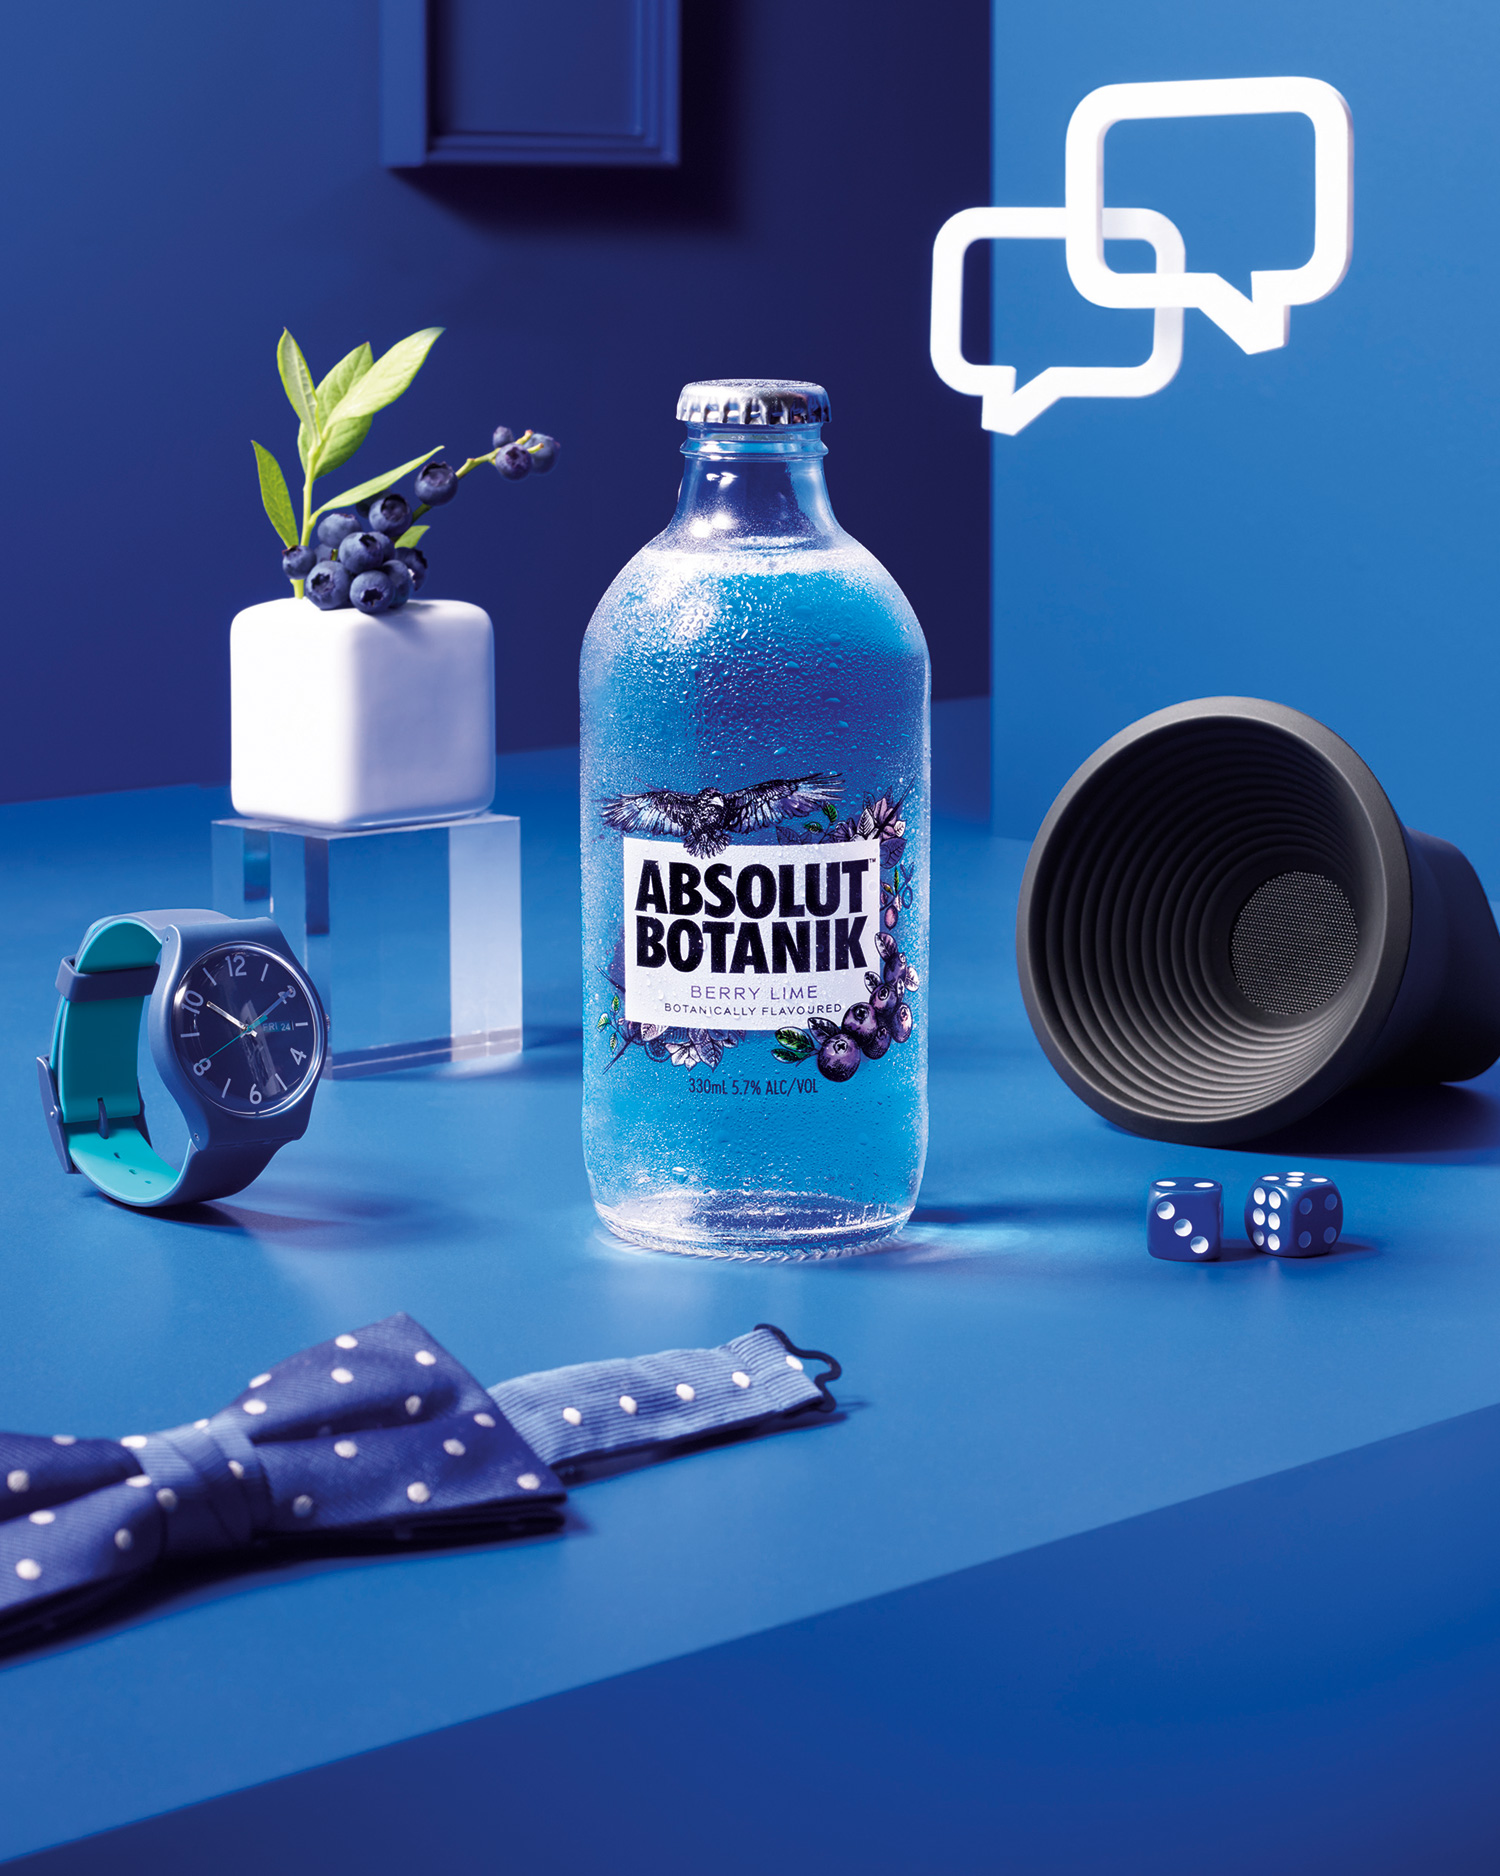 Absolut Botanik - Ready When you Are.